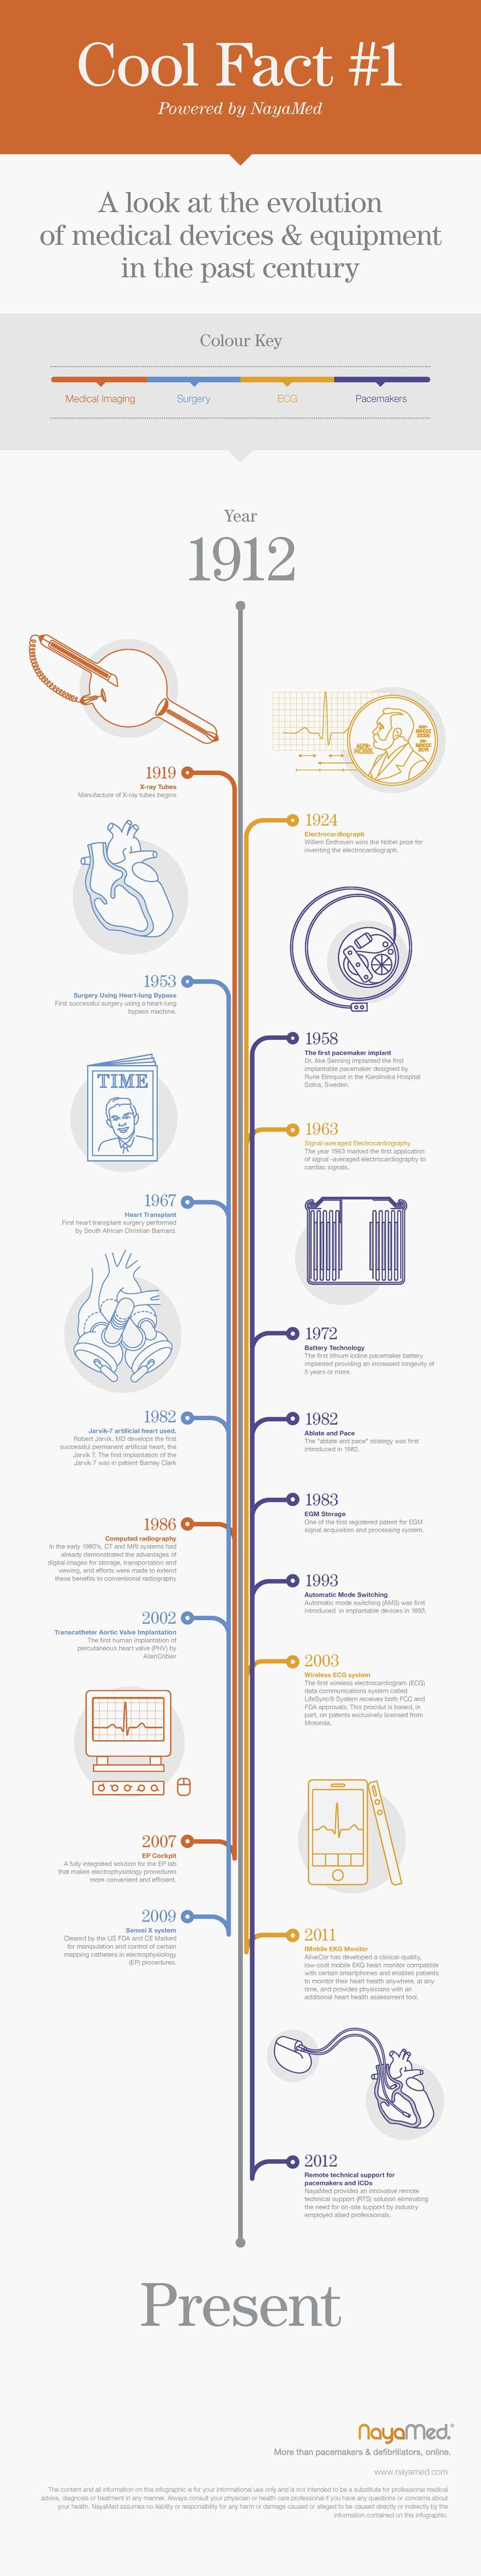 NayaMed is kicking-off the Cool.Cast Series with the topic of AT Management The first piece we have for you is Cool Fact #1: A look at the evolution of medical devices & equipment in the past century.